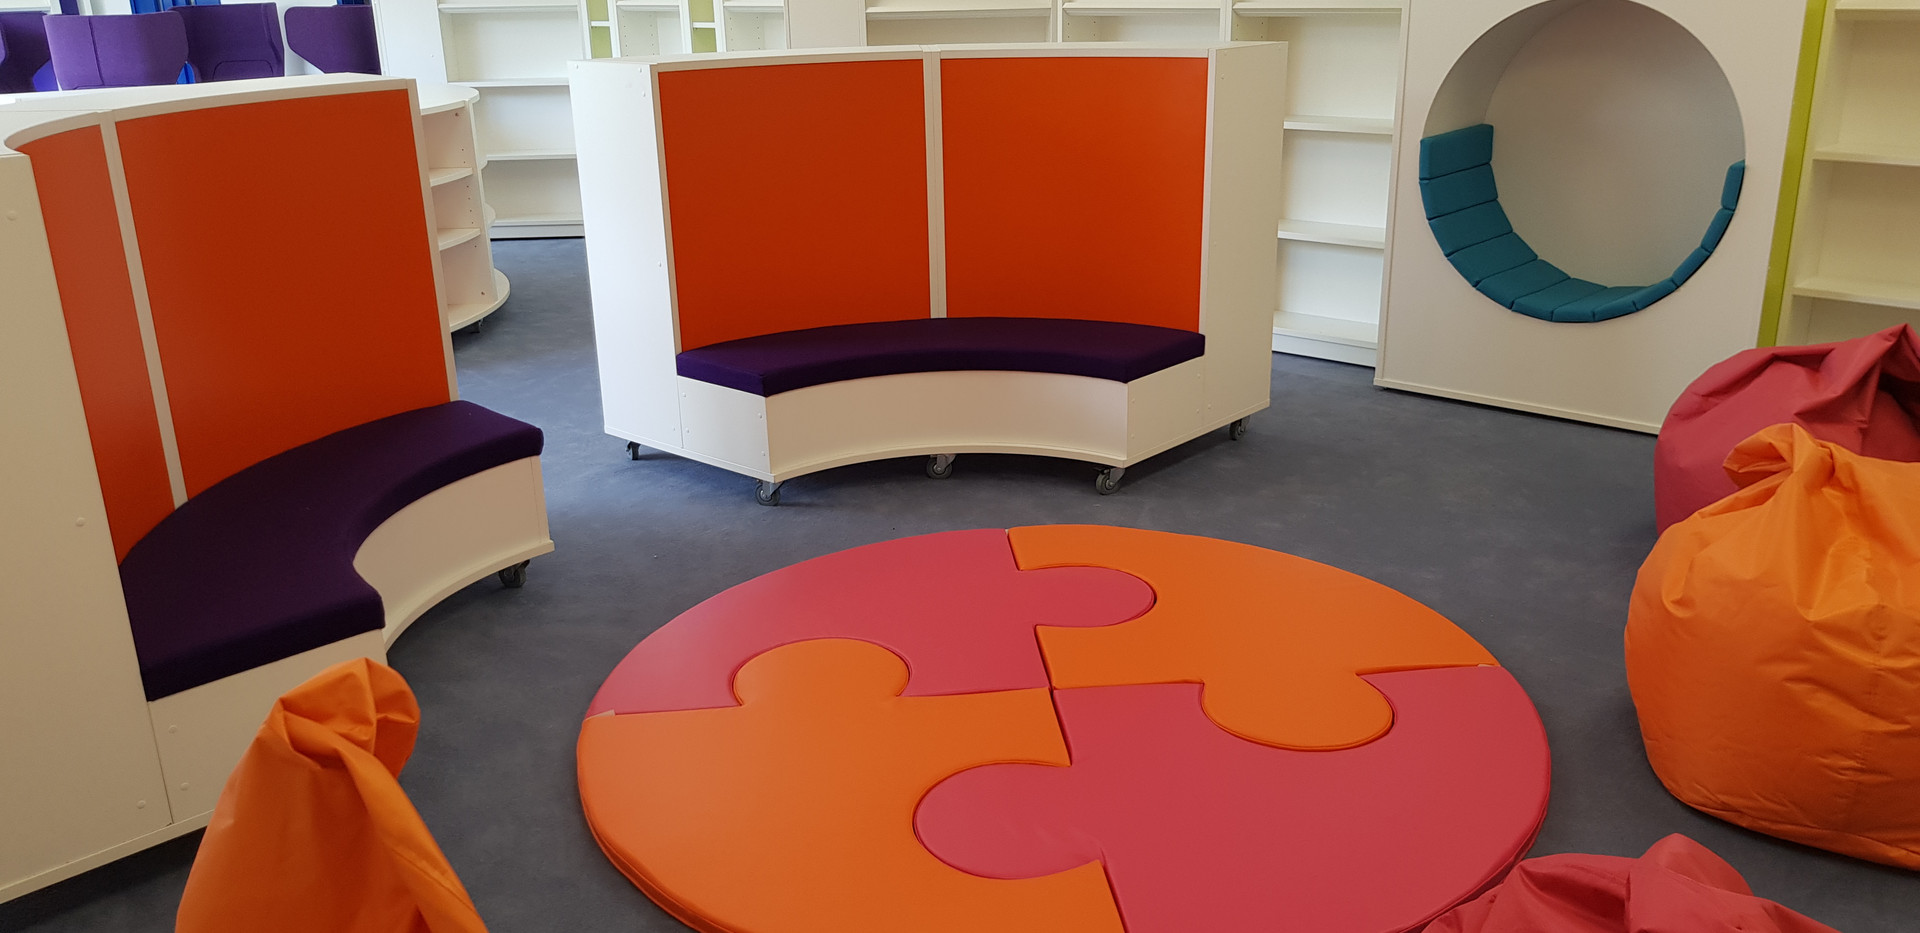 Bespoke library shelving with seating.